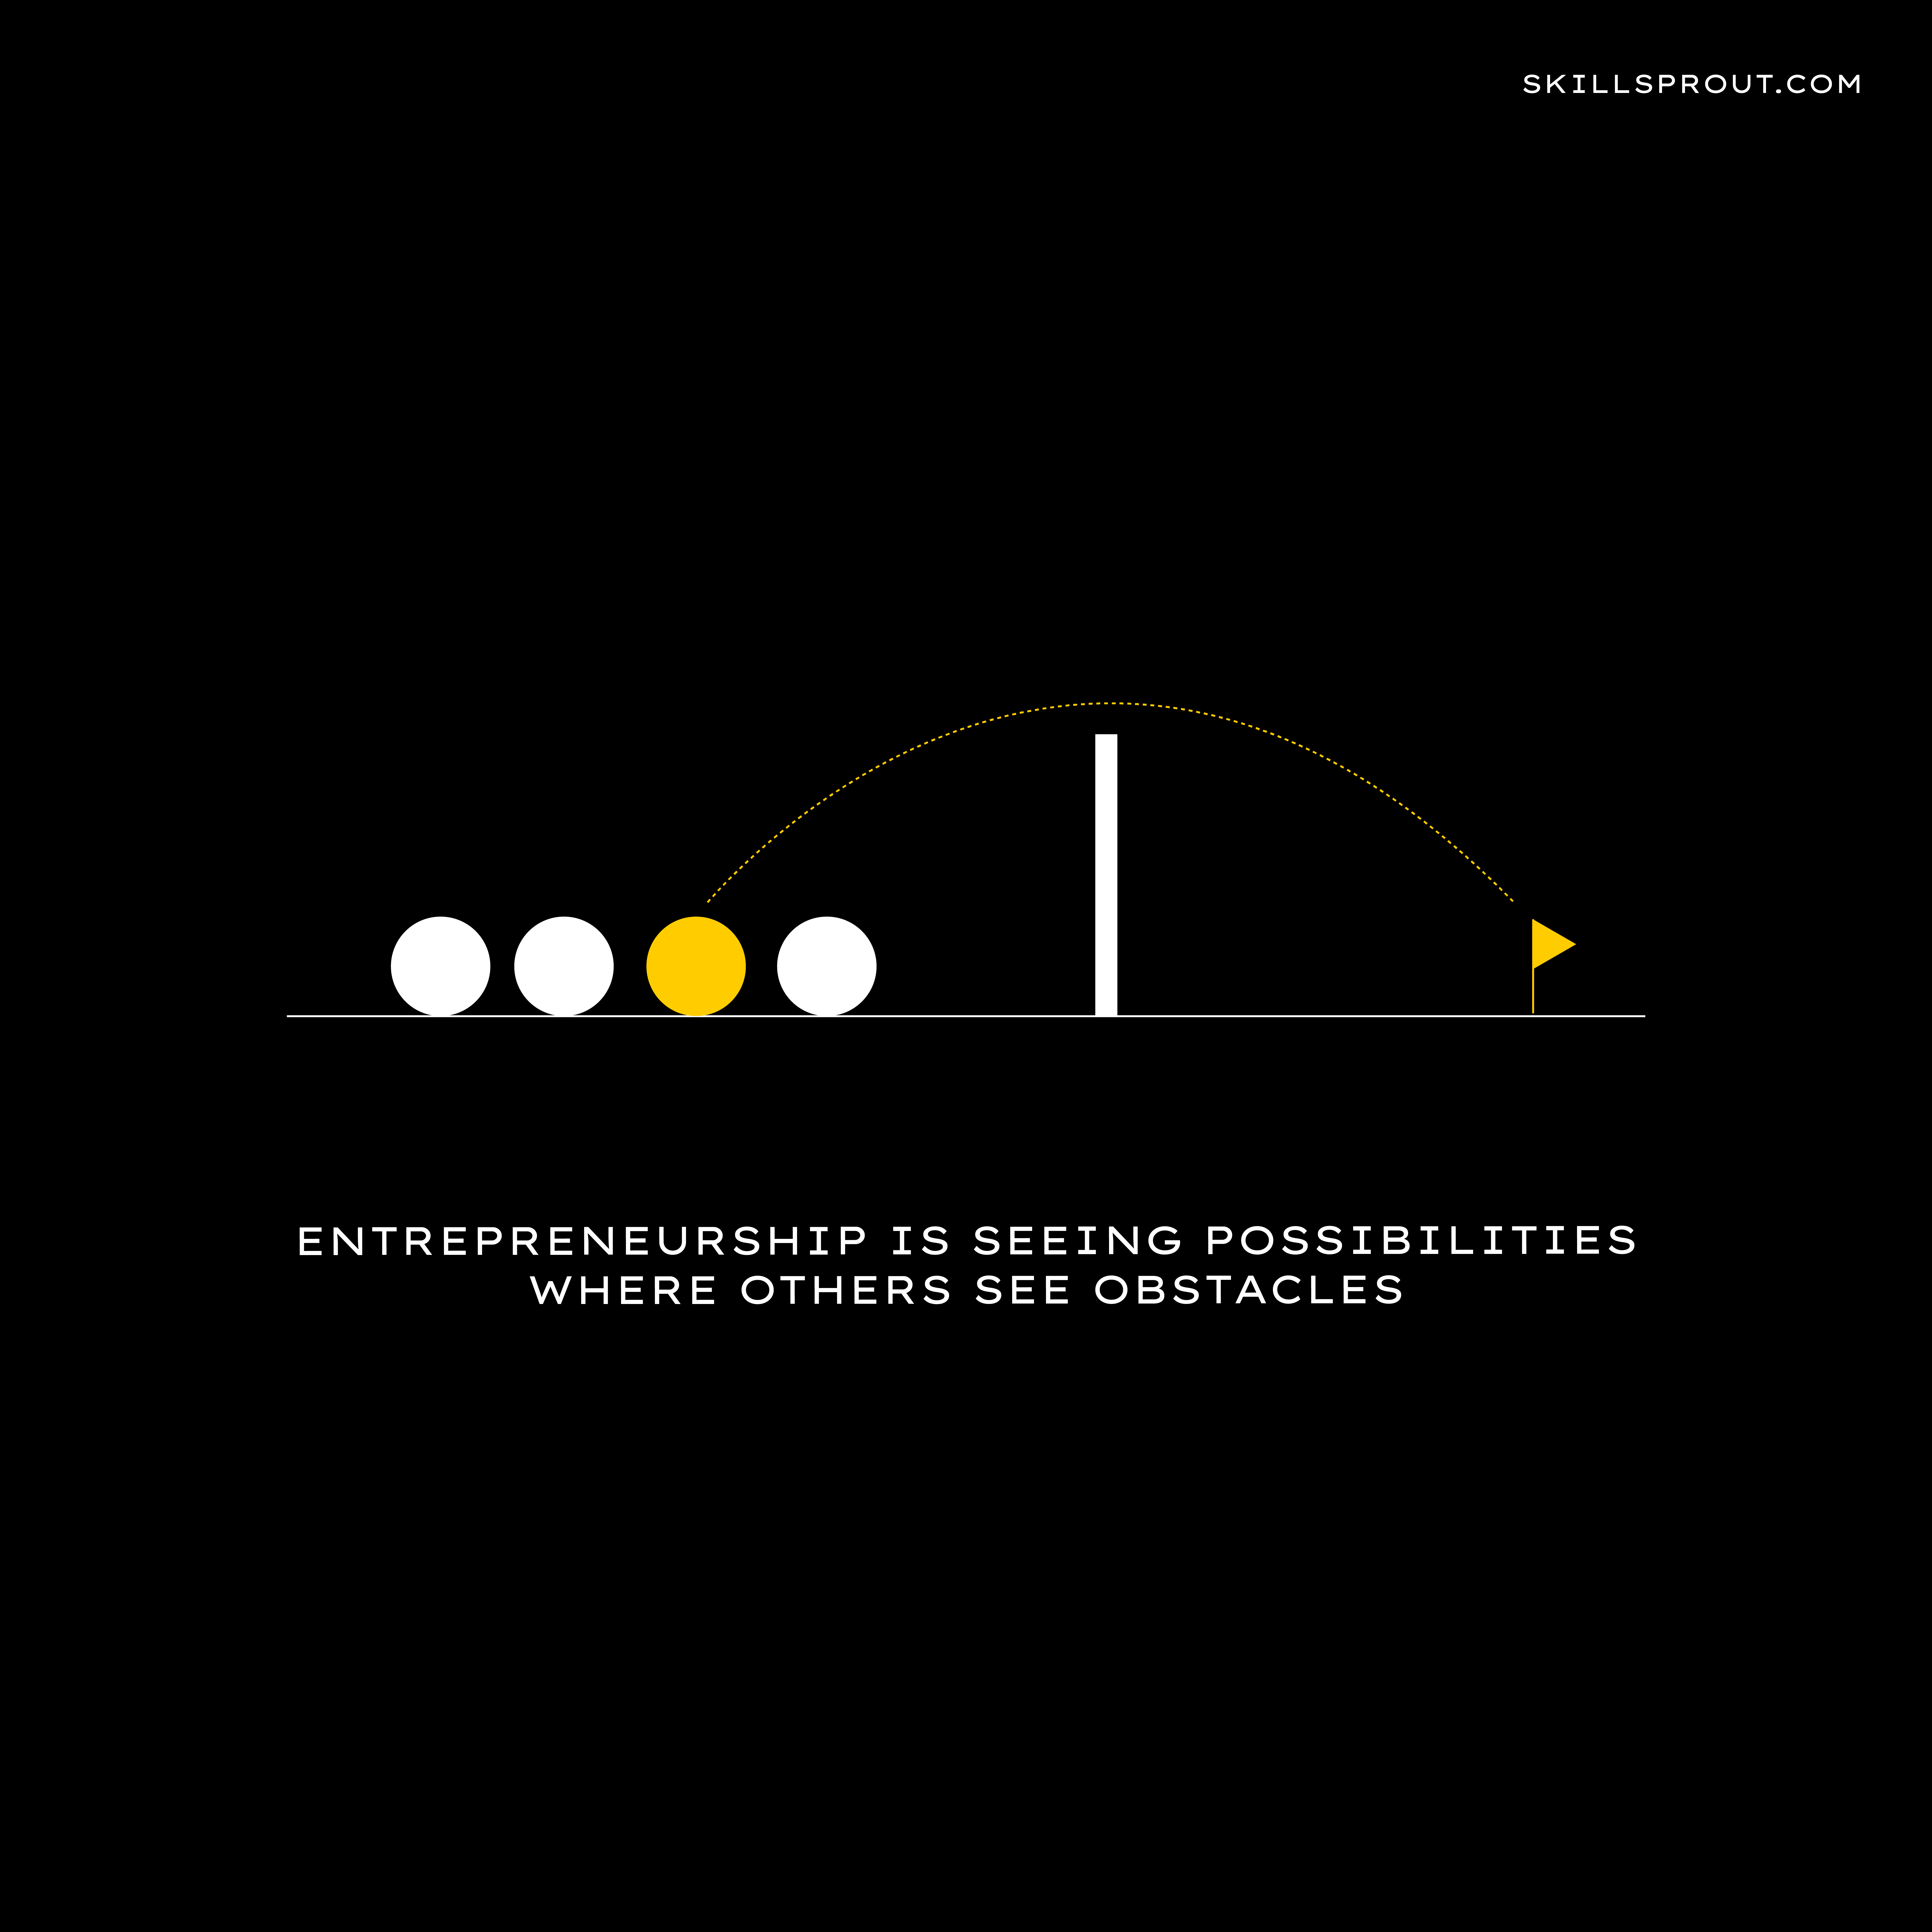 Entrepreneurship is seeing possibilities in obstacles